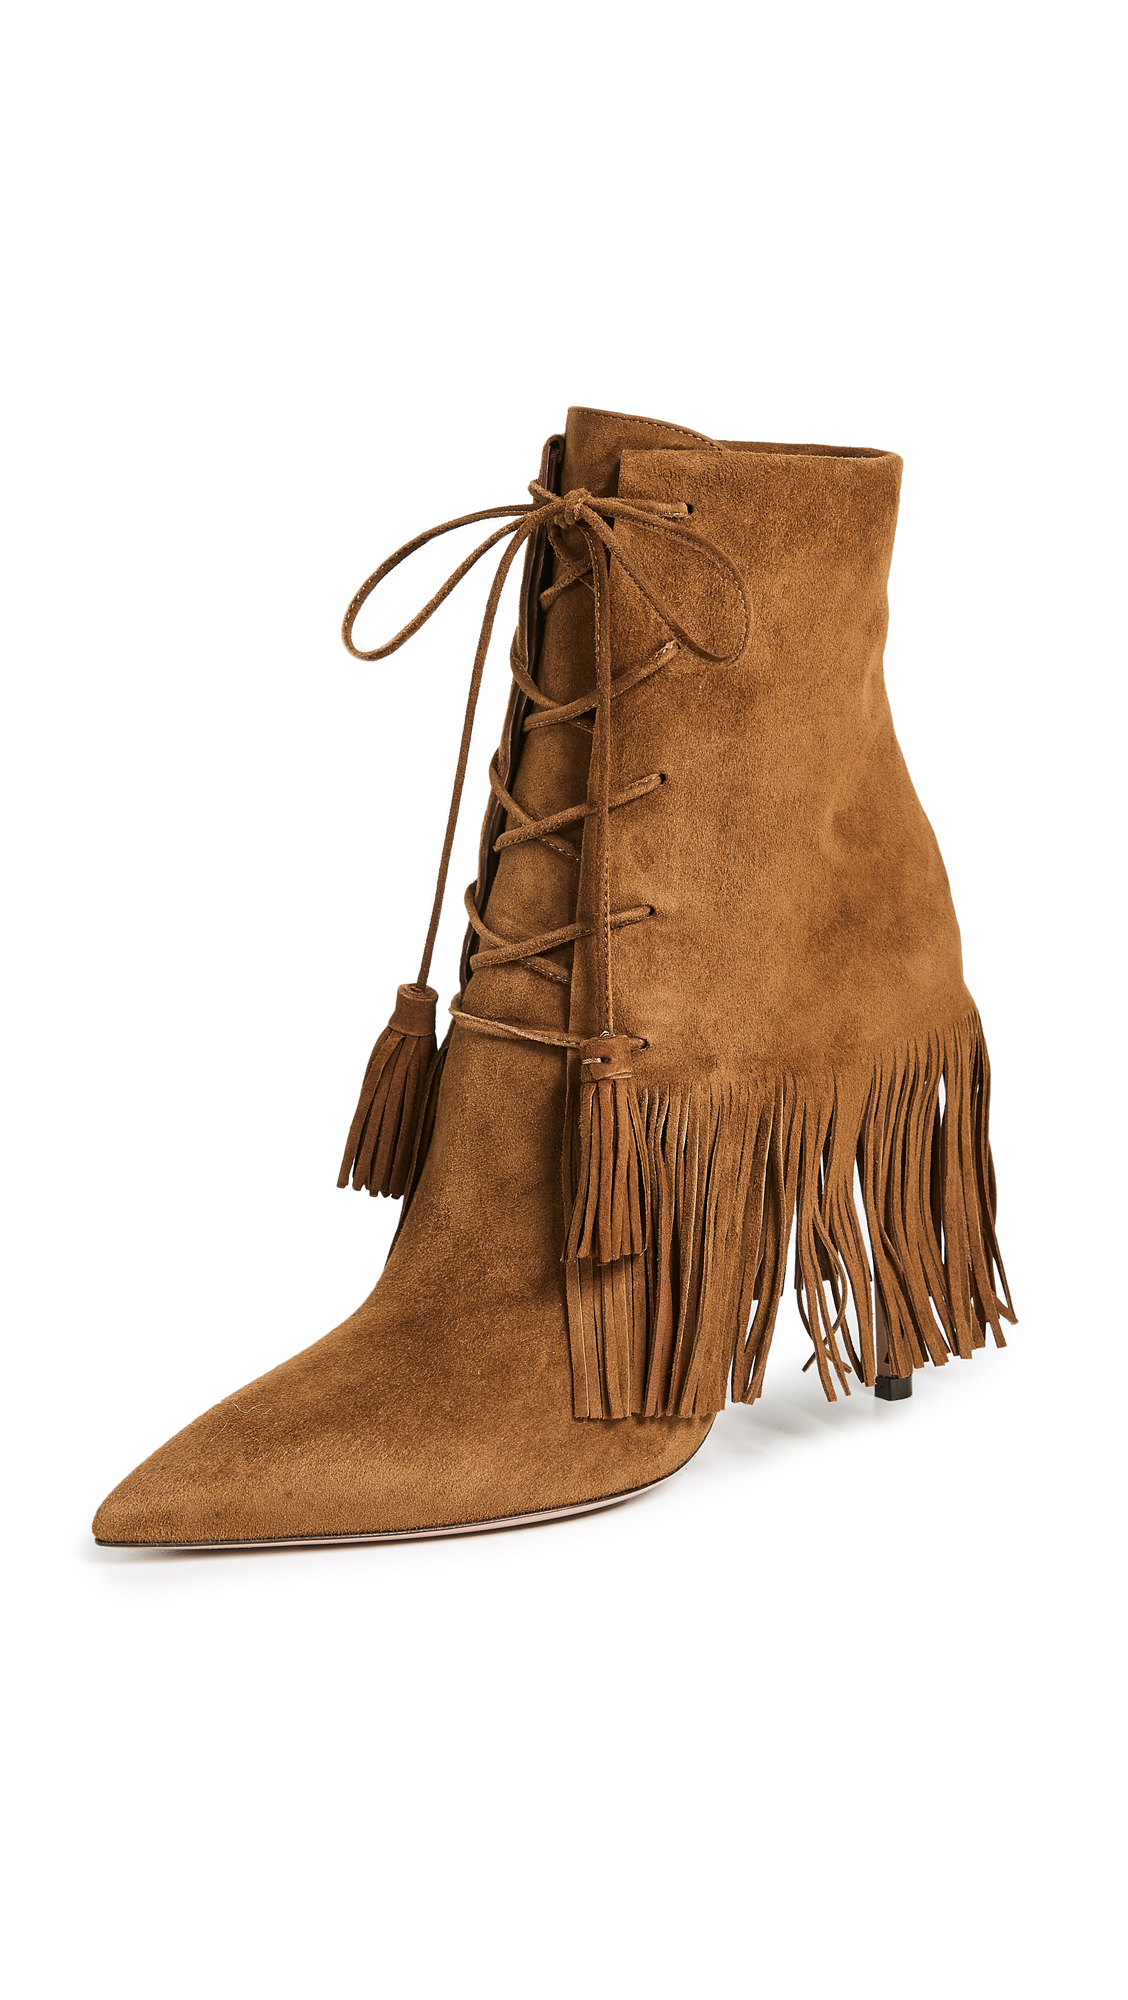 Aquazzura Mustang 105mm Booties - Cinnamon